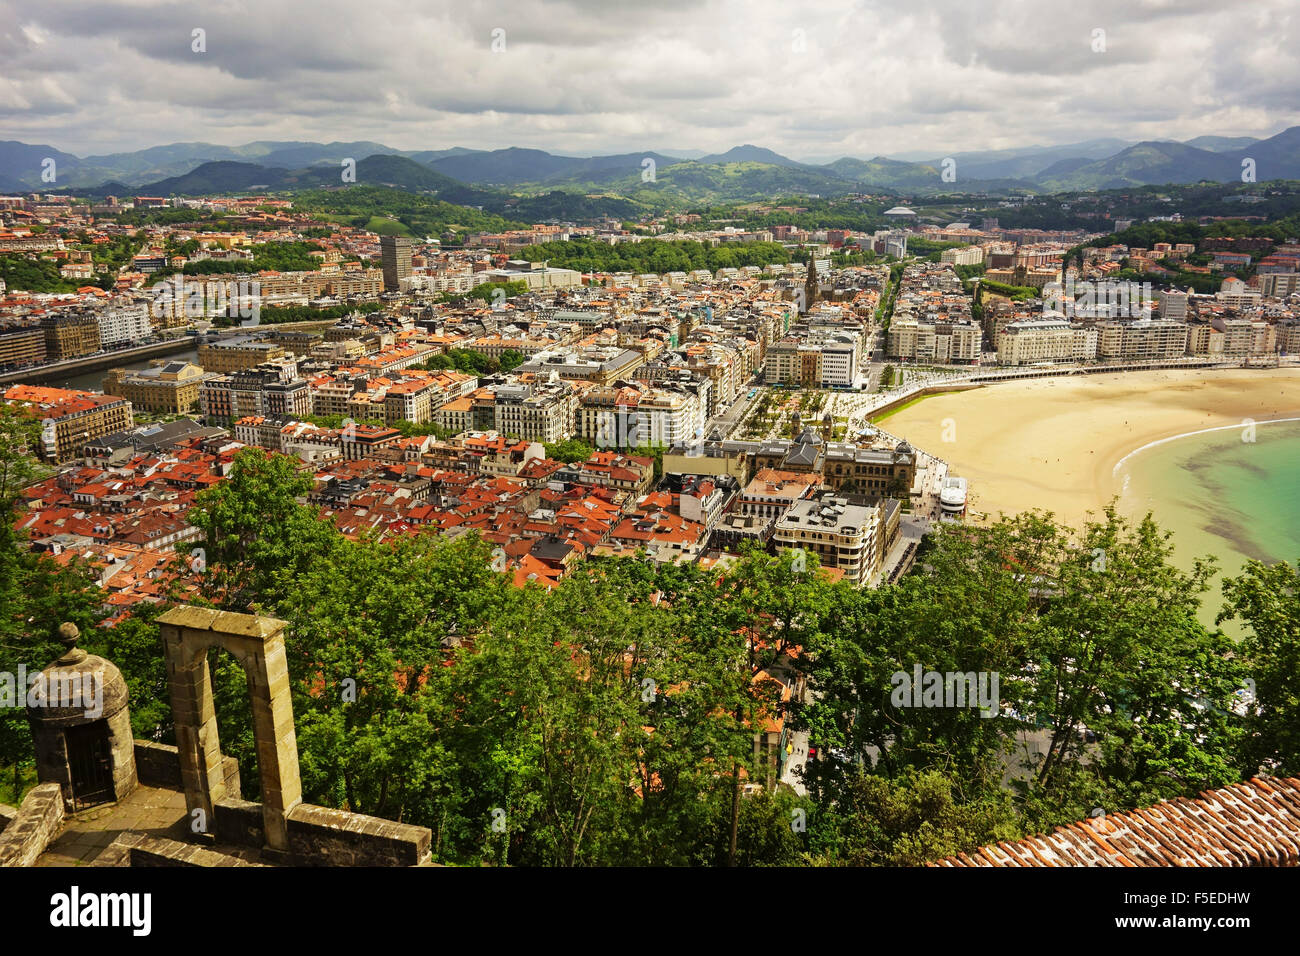 View of San Sebastian from Monte Urgull, Basque Country, Spain, Europe - Stock Image